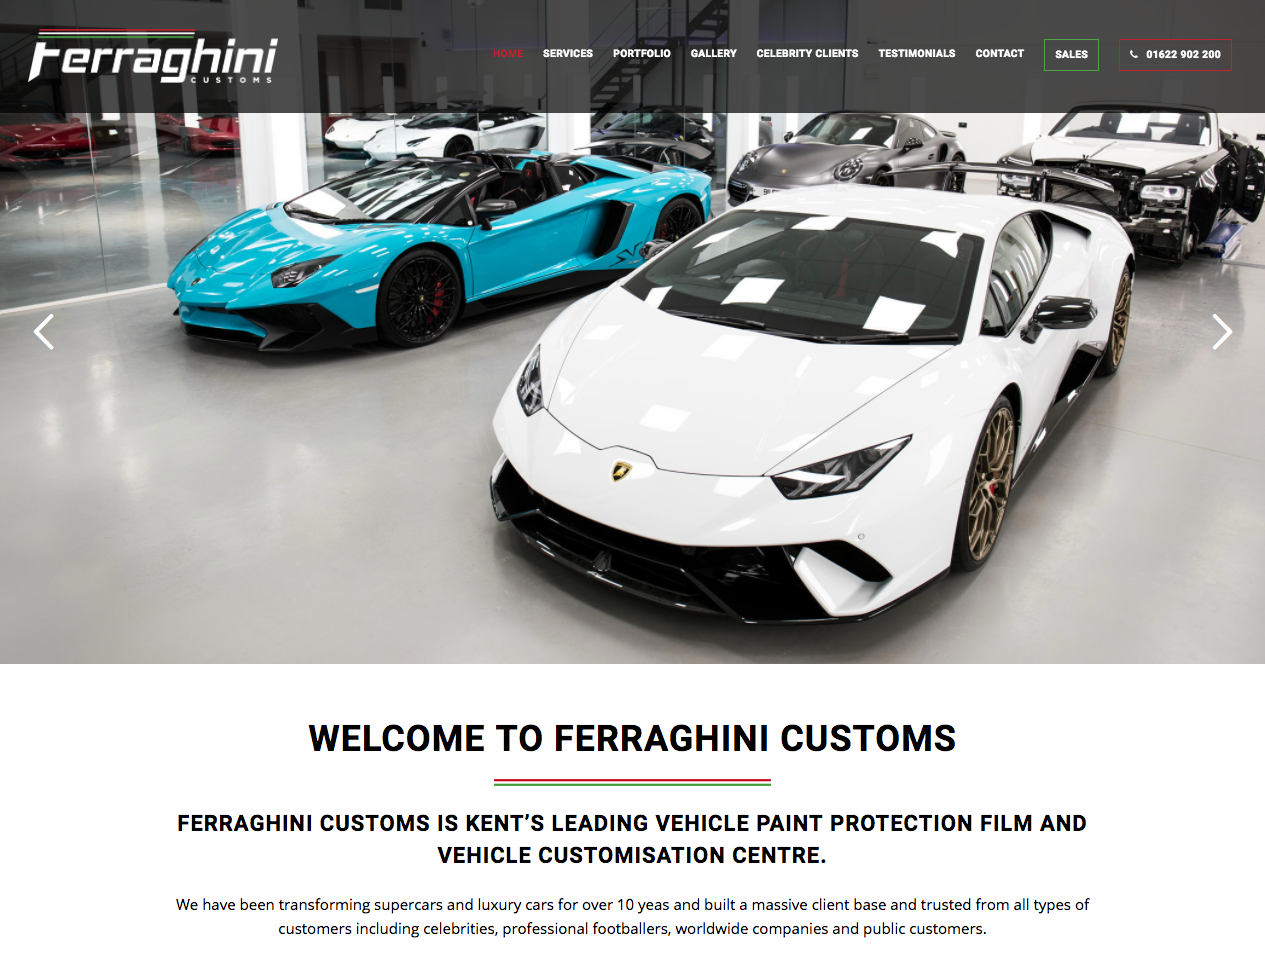 Ferraghini Customs - Car websites in bromley and croydon